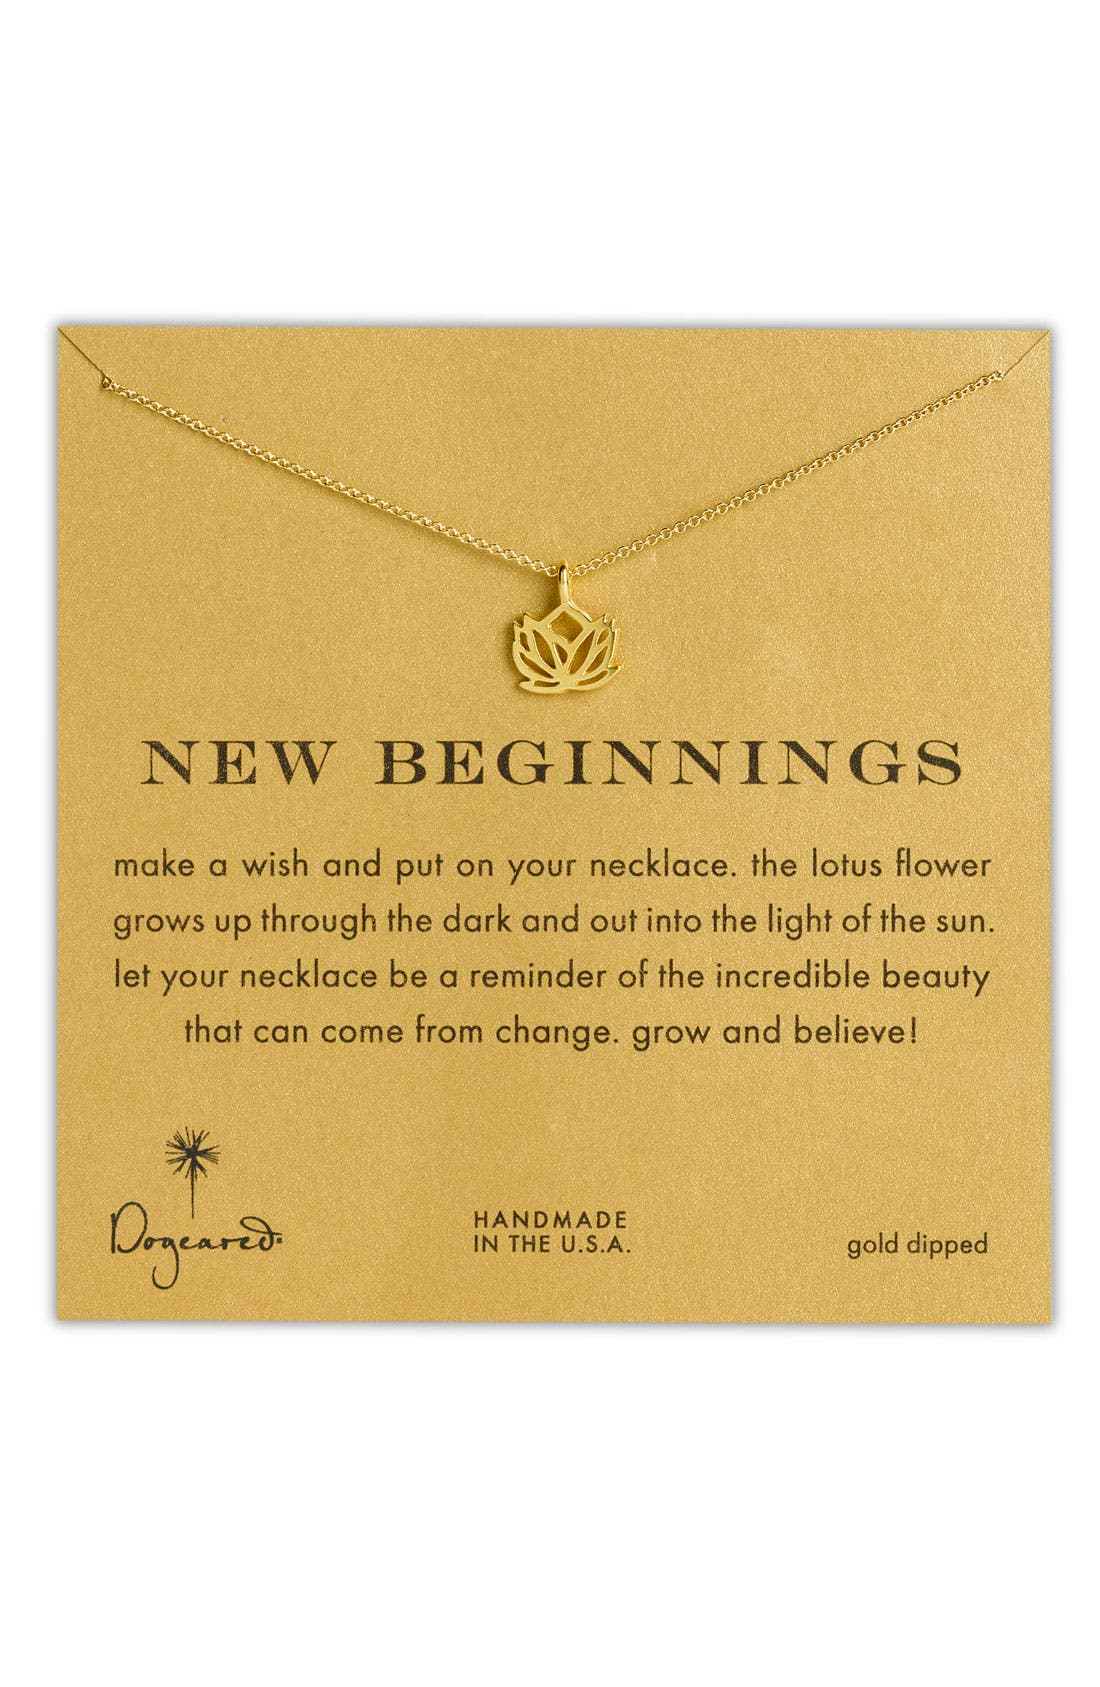 Alternate Image 1 Selected - Dogeared 'Reminder - New Beginnings' Pendant Necklace